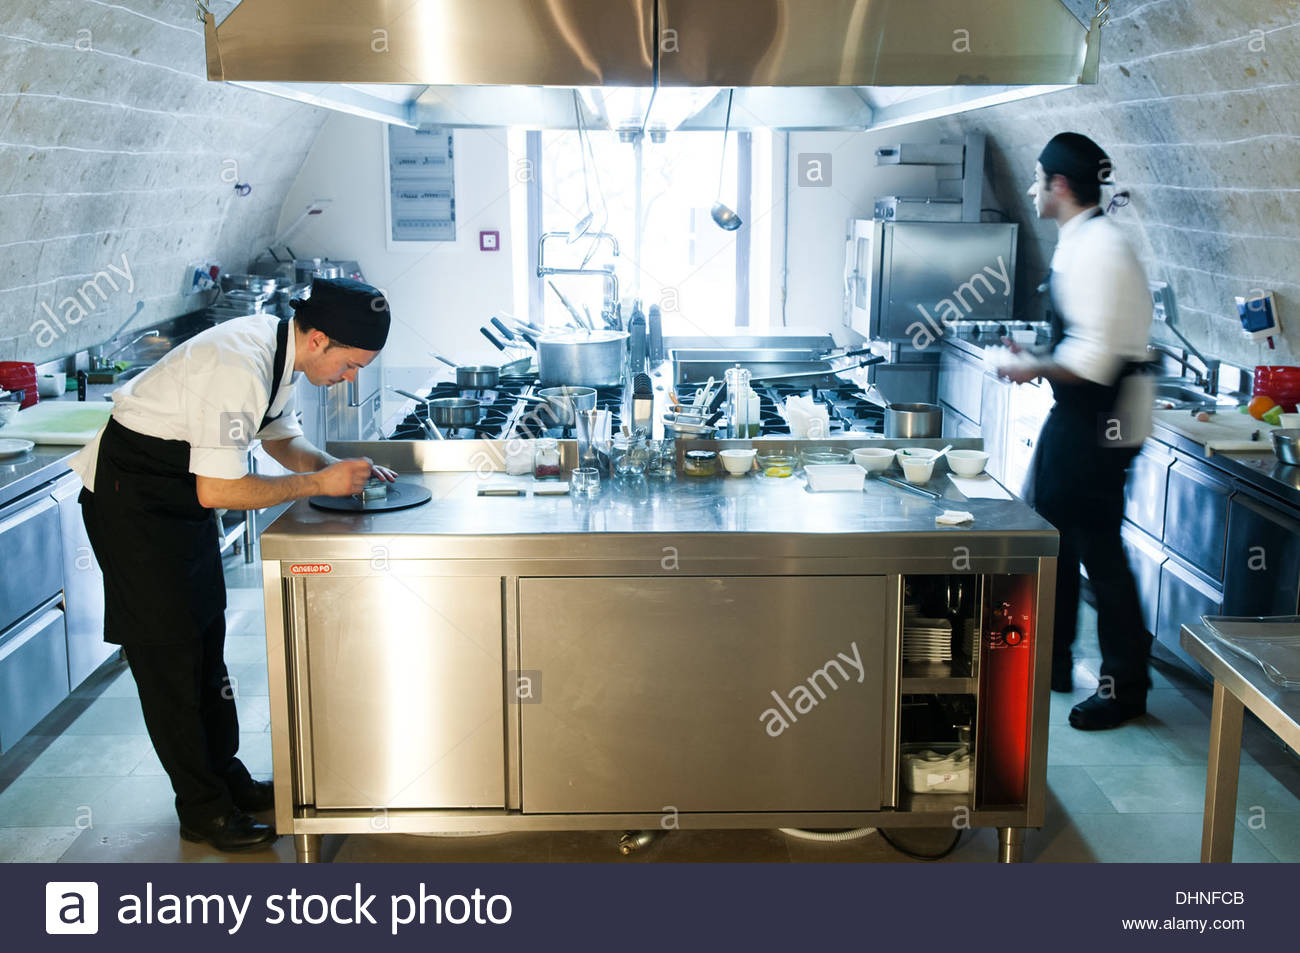 Kitchens Of Italy Stock Photos & Kitchens Of Italy Stock Images - Alamy